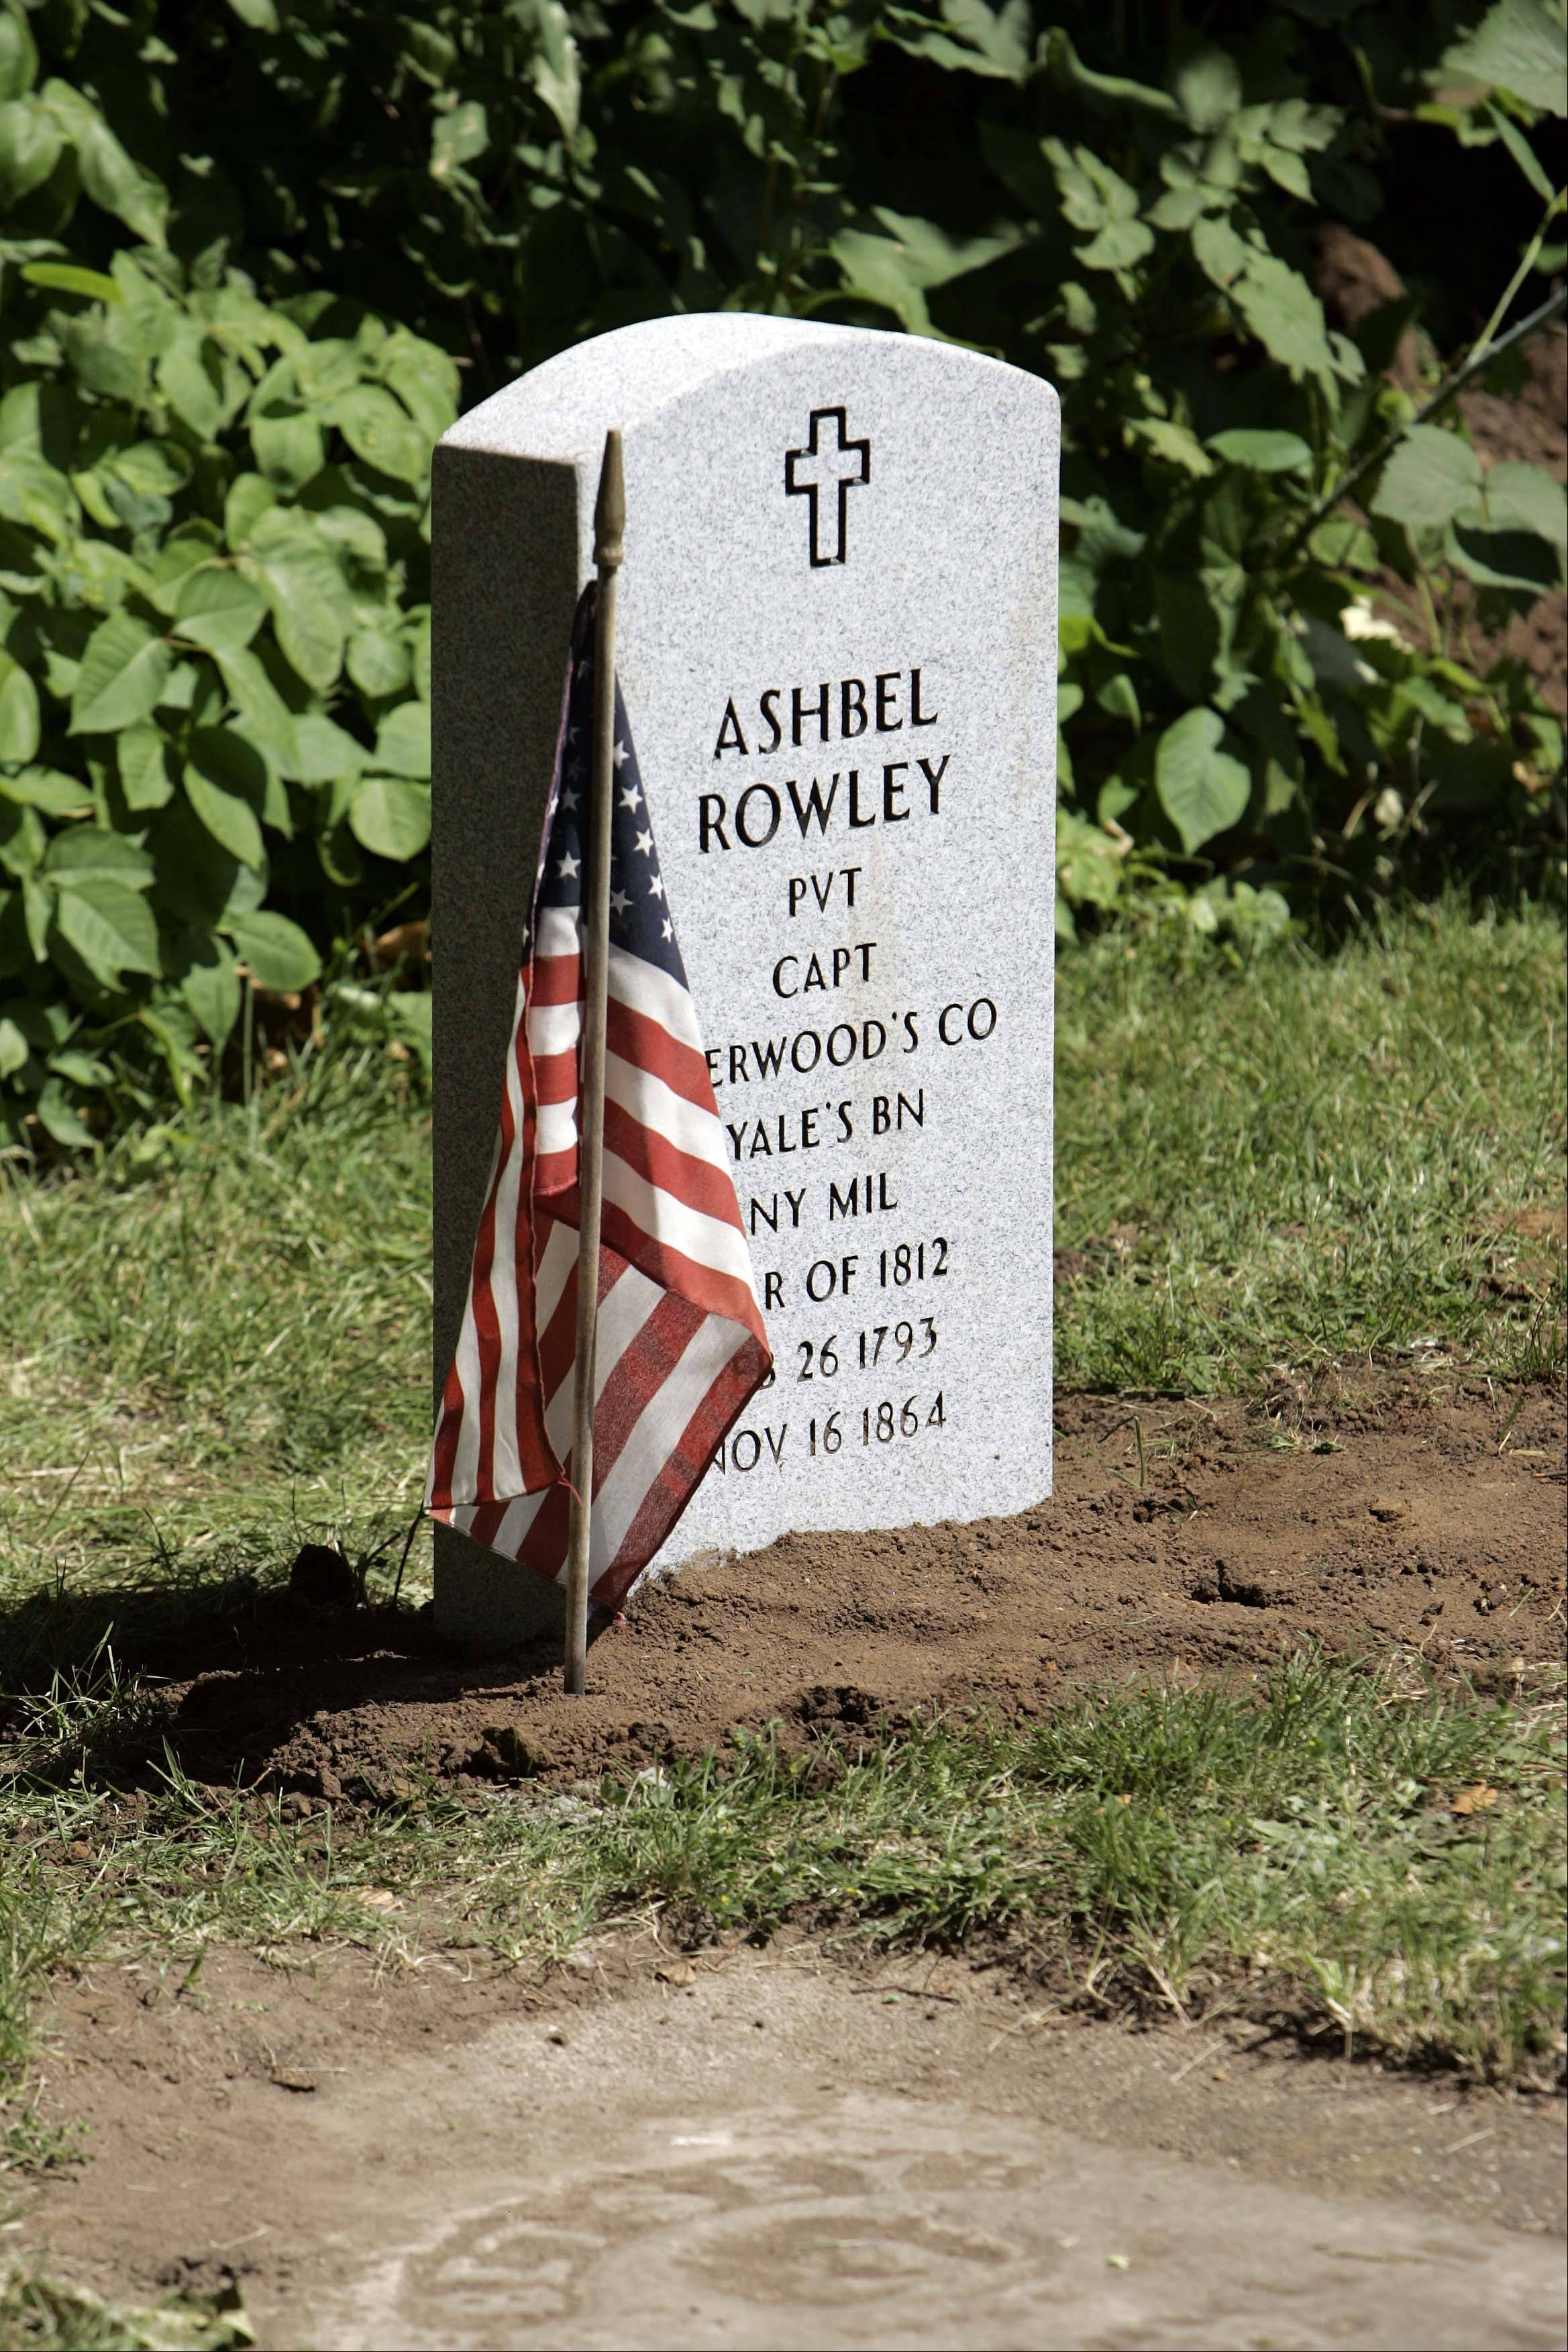 Complete with a flag, the new gravestone of Ashbel Rowley sits in the Sugar Grove Cemetery.